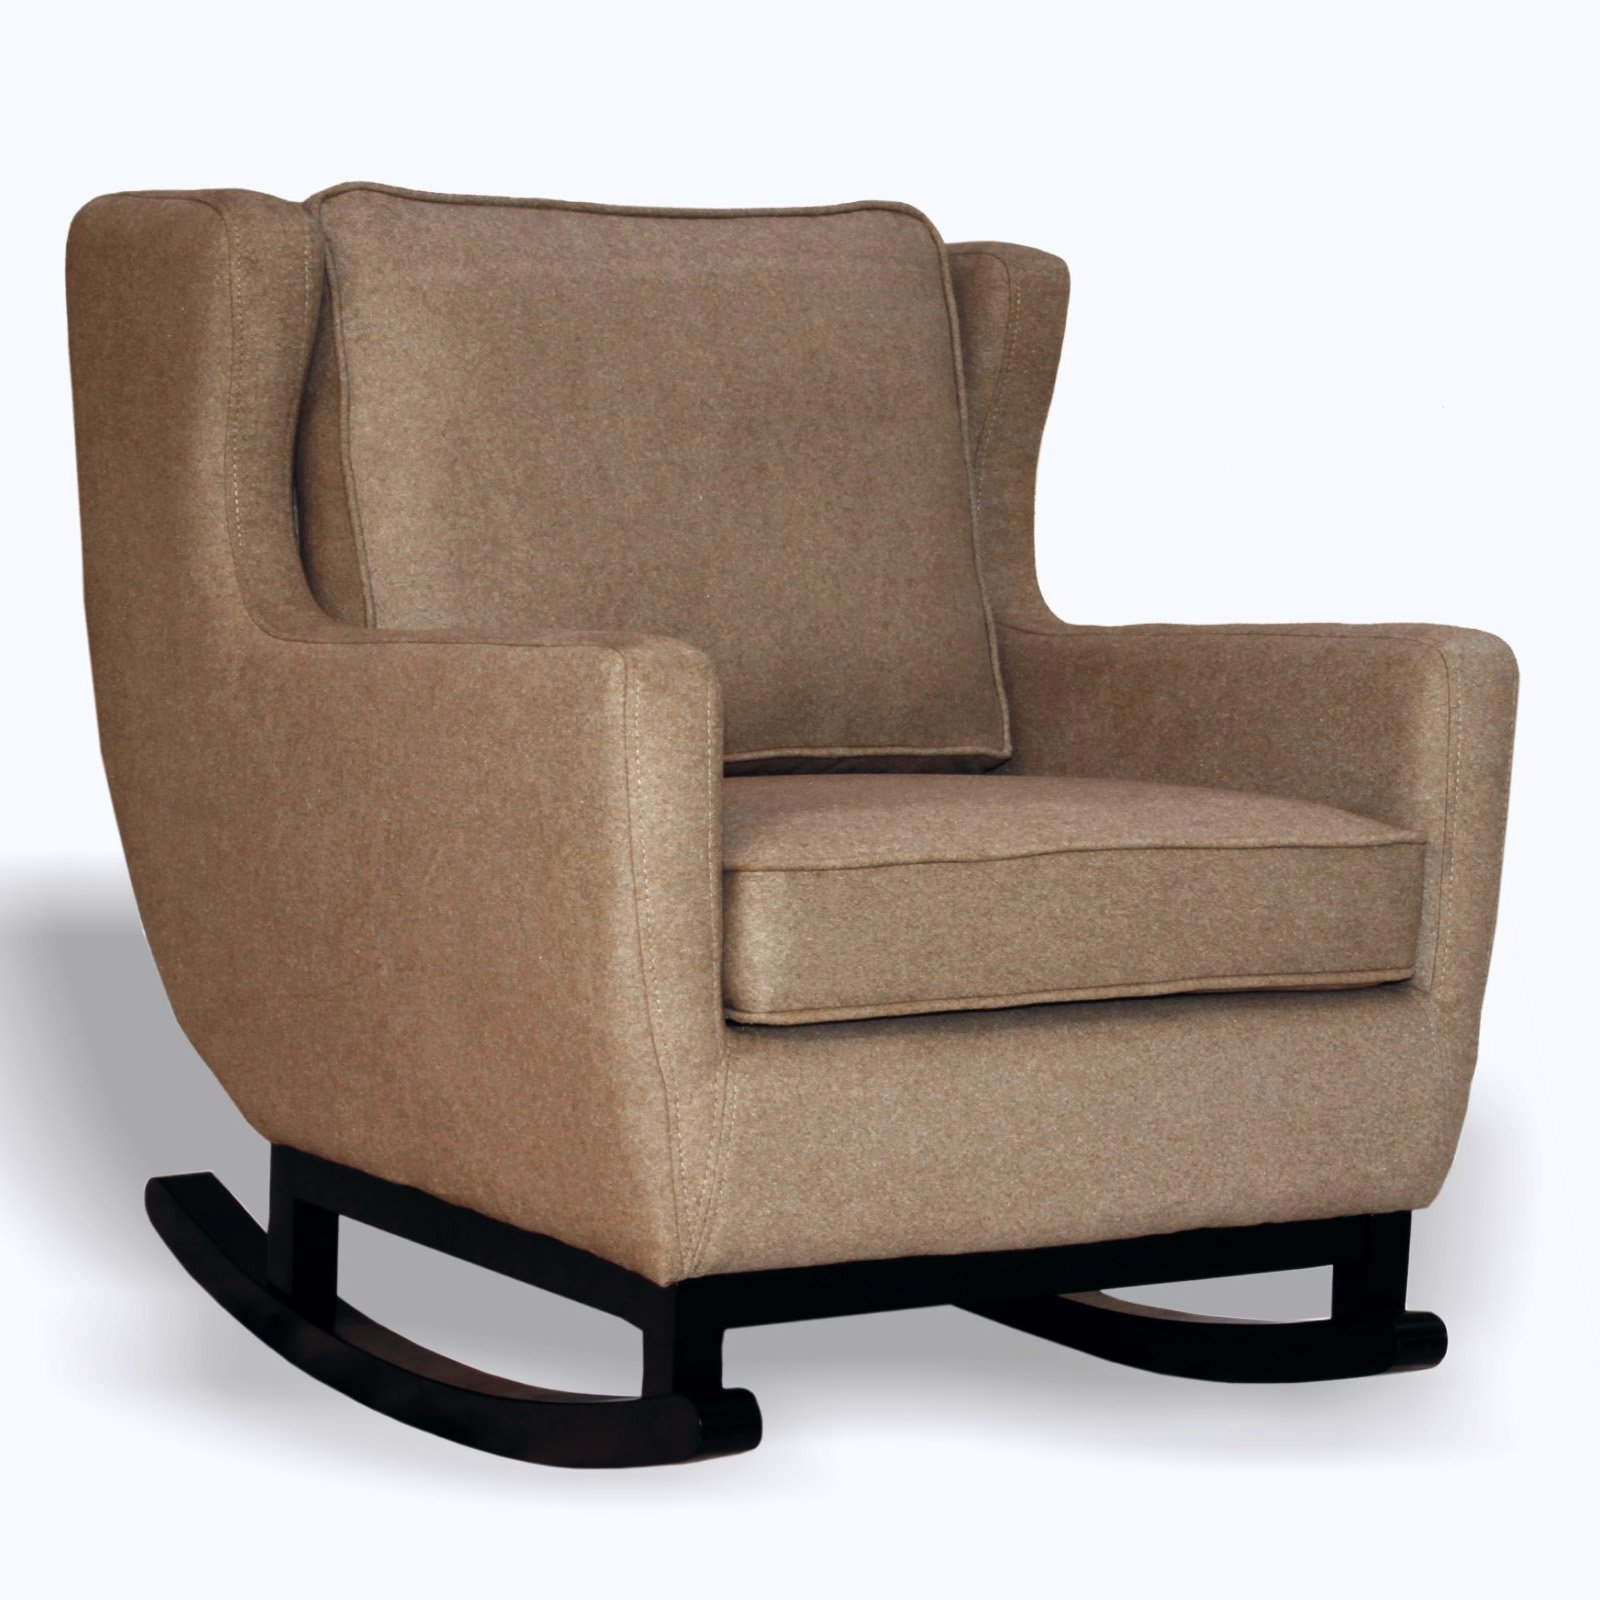 Image of: Upholstered Rocking Chair 2014